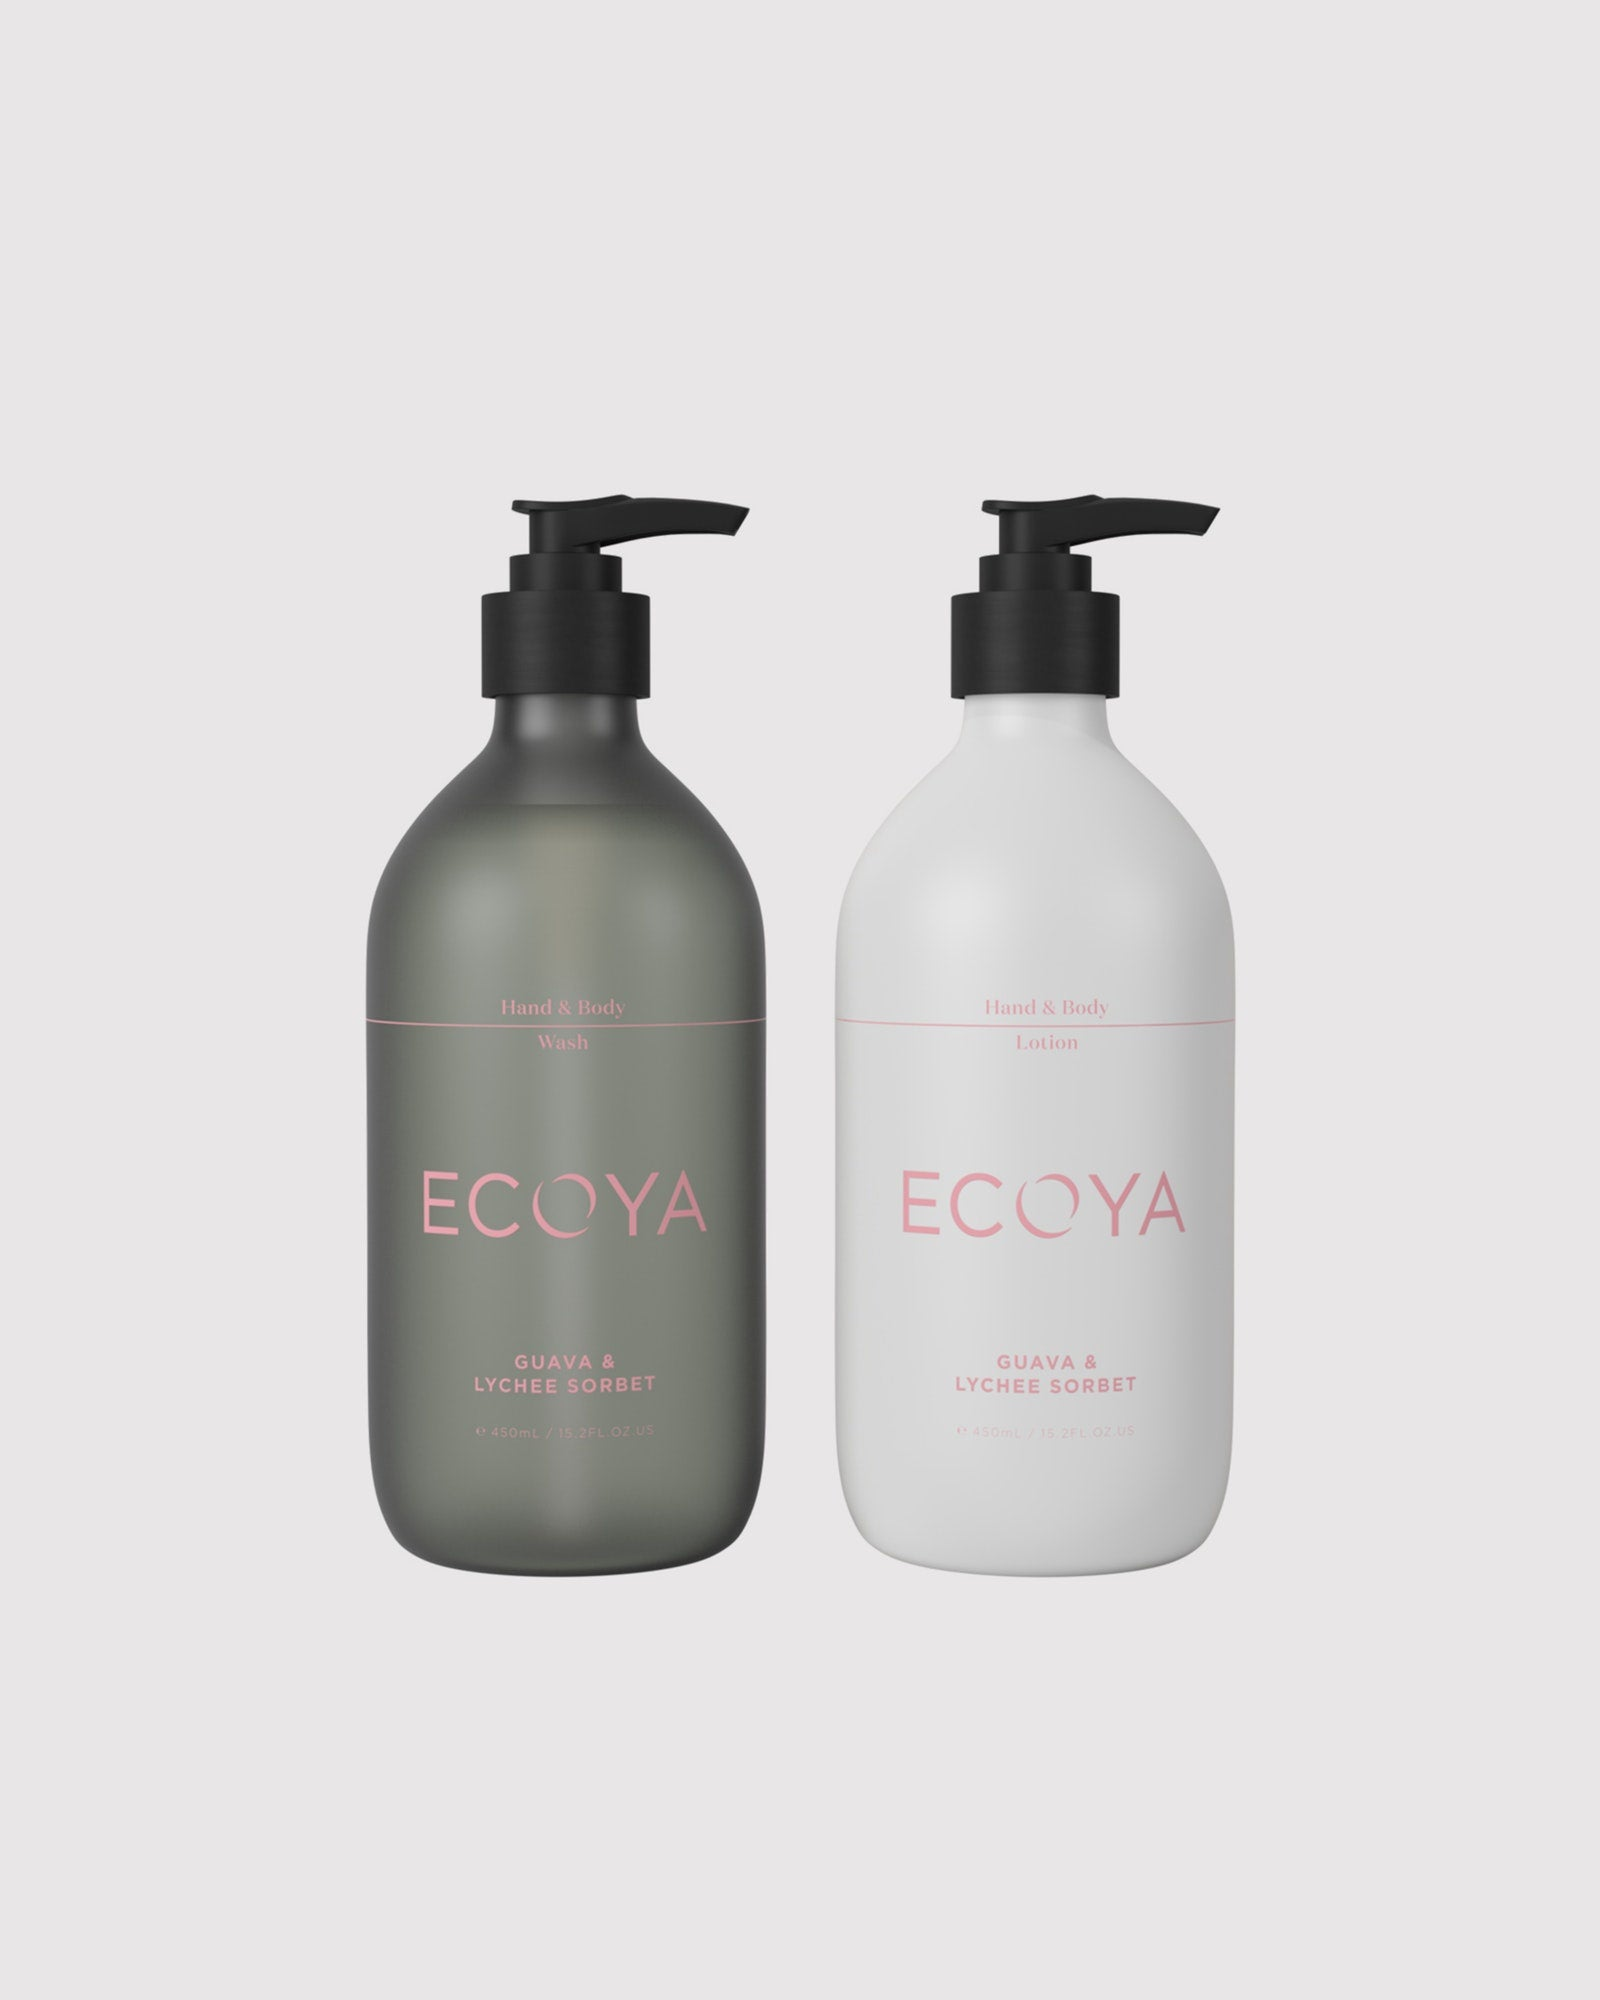 ECOYA BODY LOTION